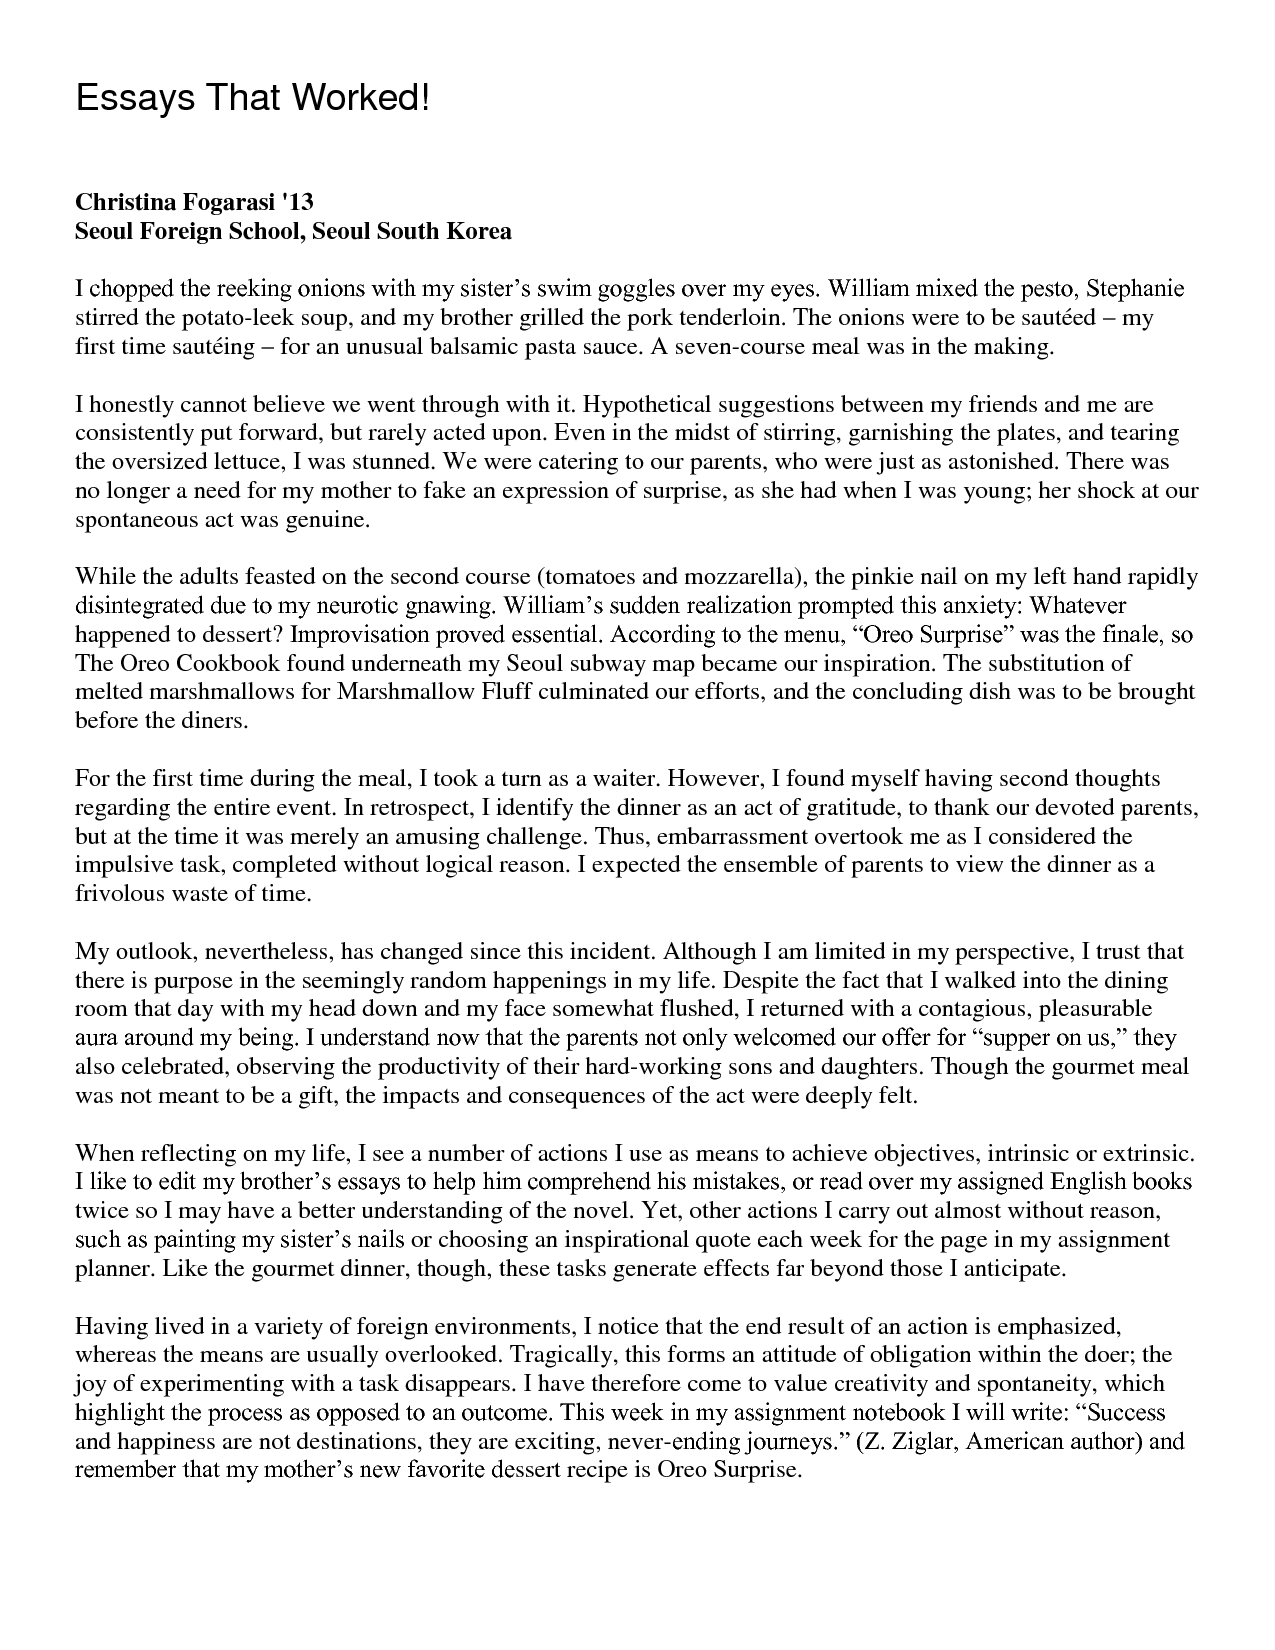 private high school admission essay examples Archives - Current School News : Current School News